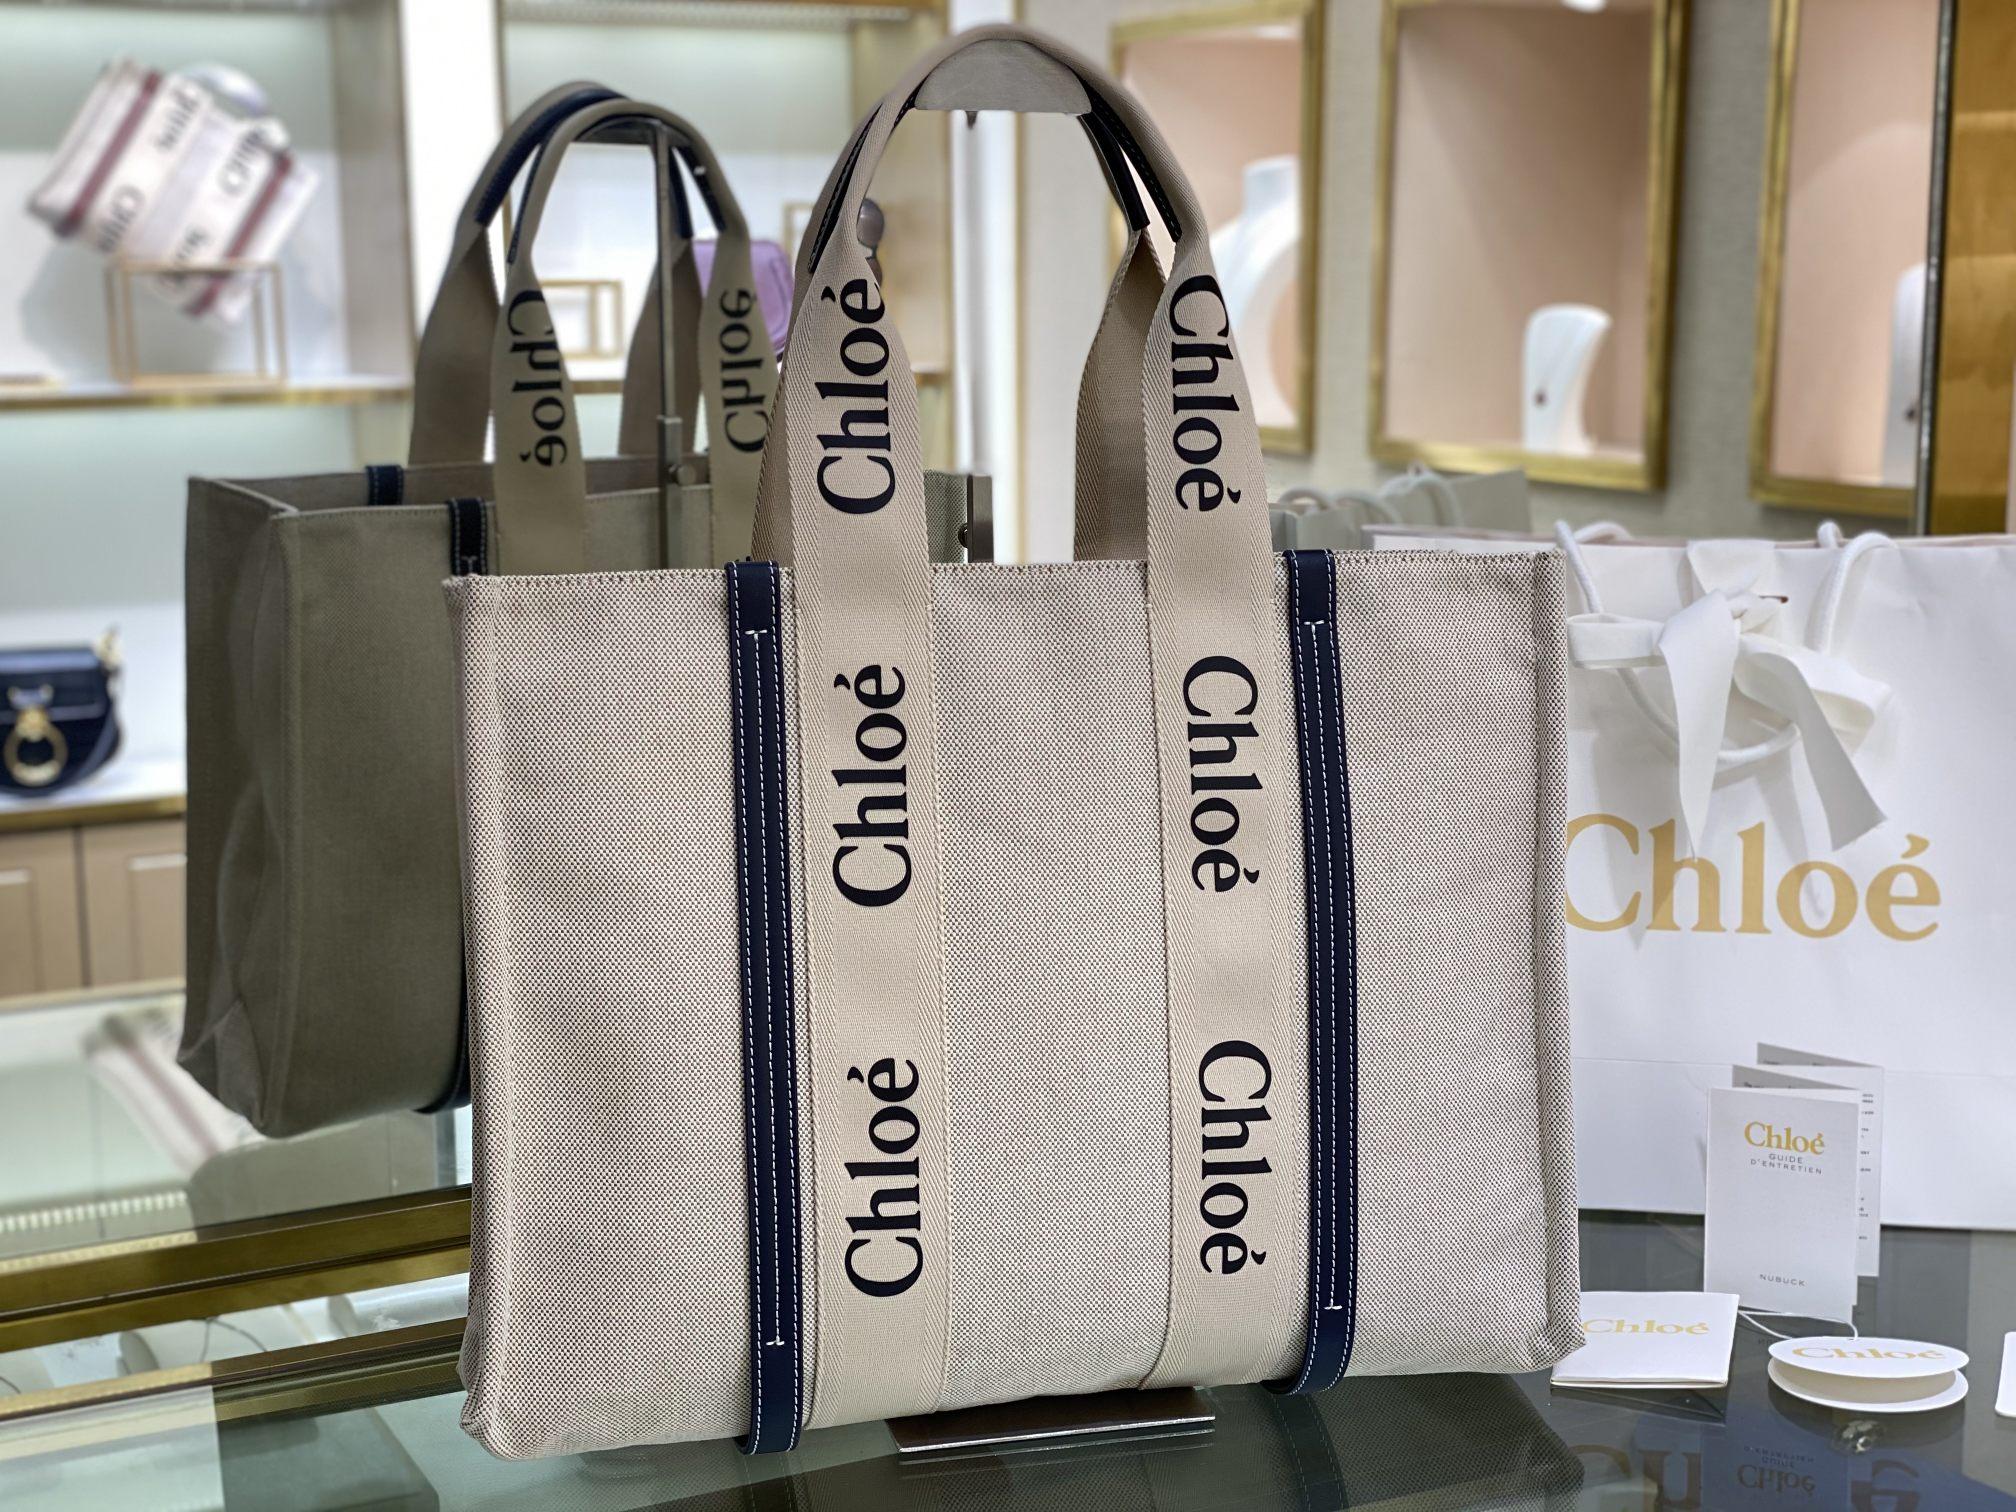 Replica Chloe Large Woody Tote Bag in Cotton Canvas Shiny Calfskin with Woody Ribbon